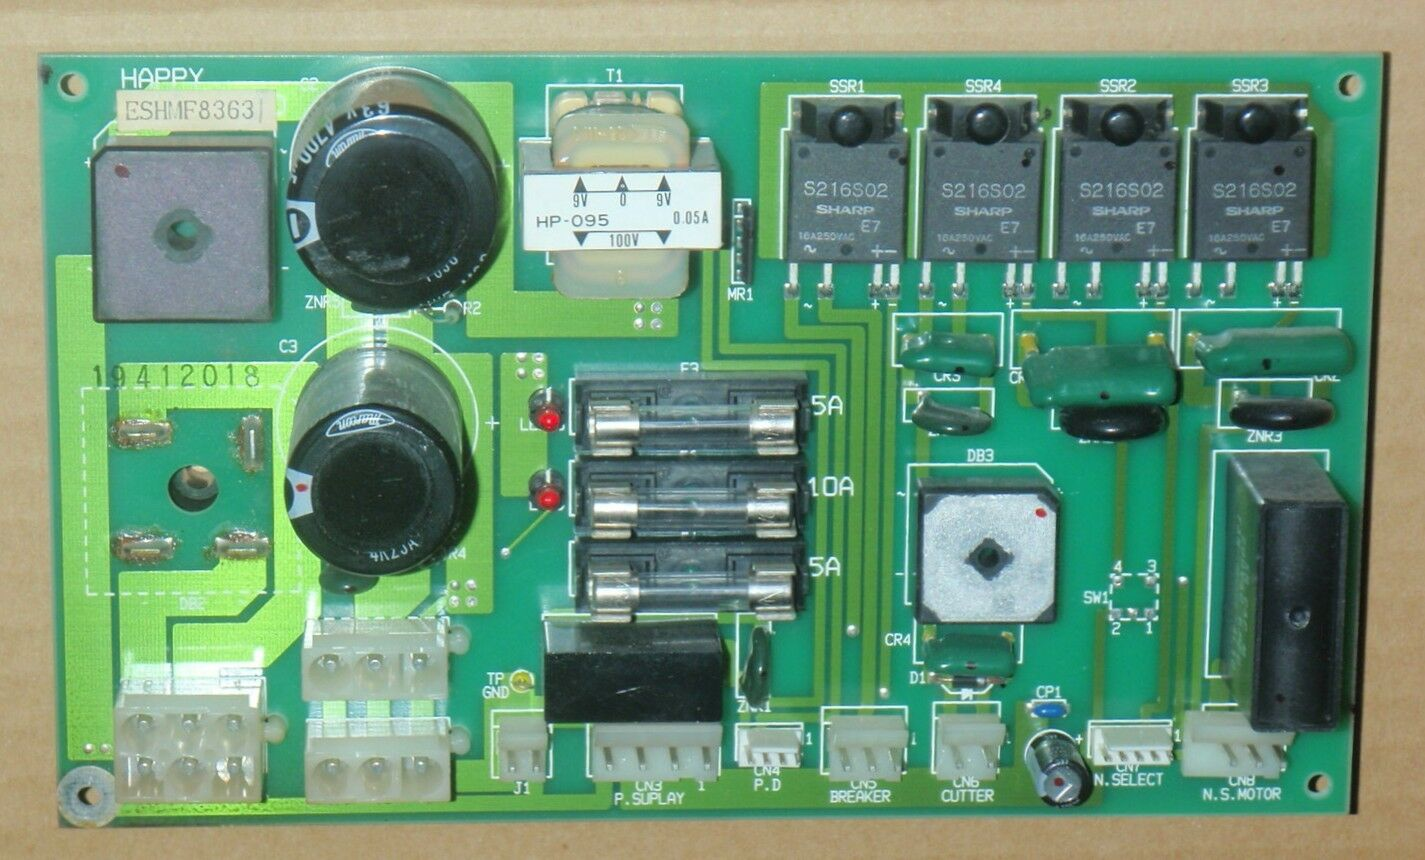 Happy Embroidery Power Supply Circuit Board Assy Hmf83634 Eshmf83631 Printing Machine Prices Buy Machinecircuit 1 Of 1only Available